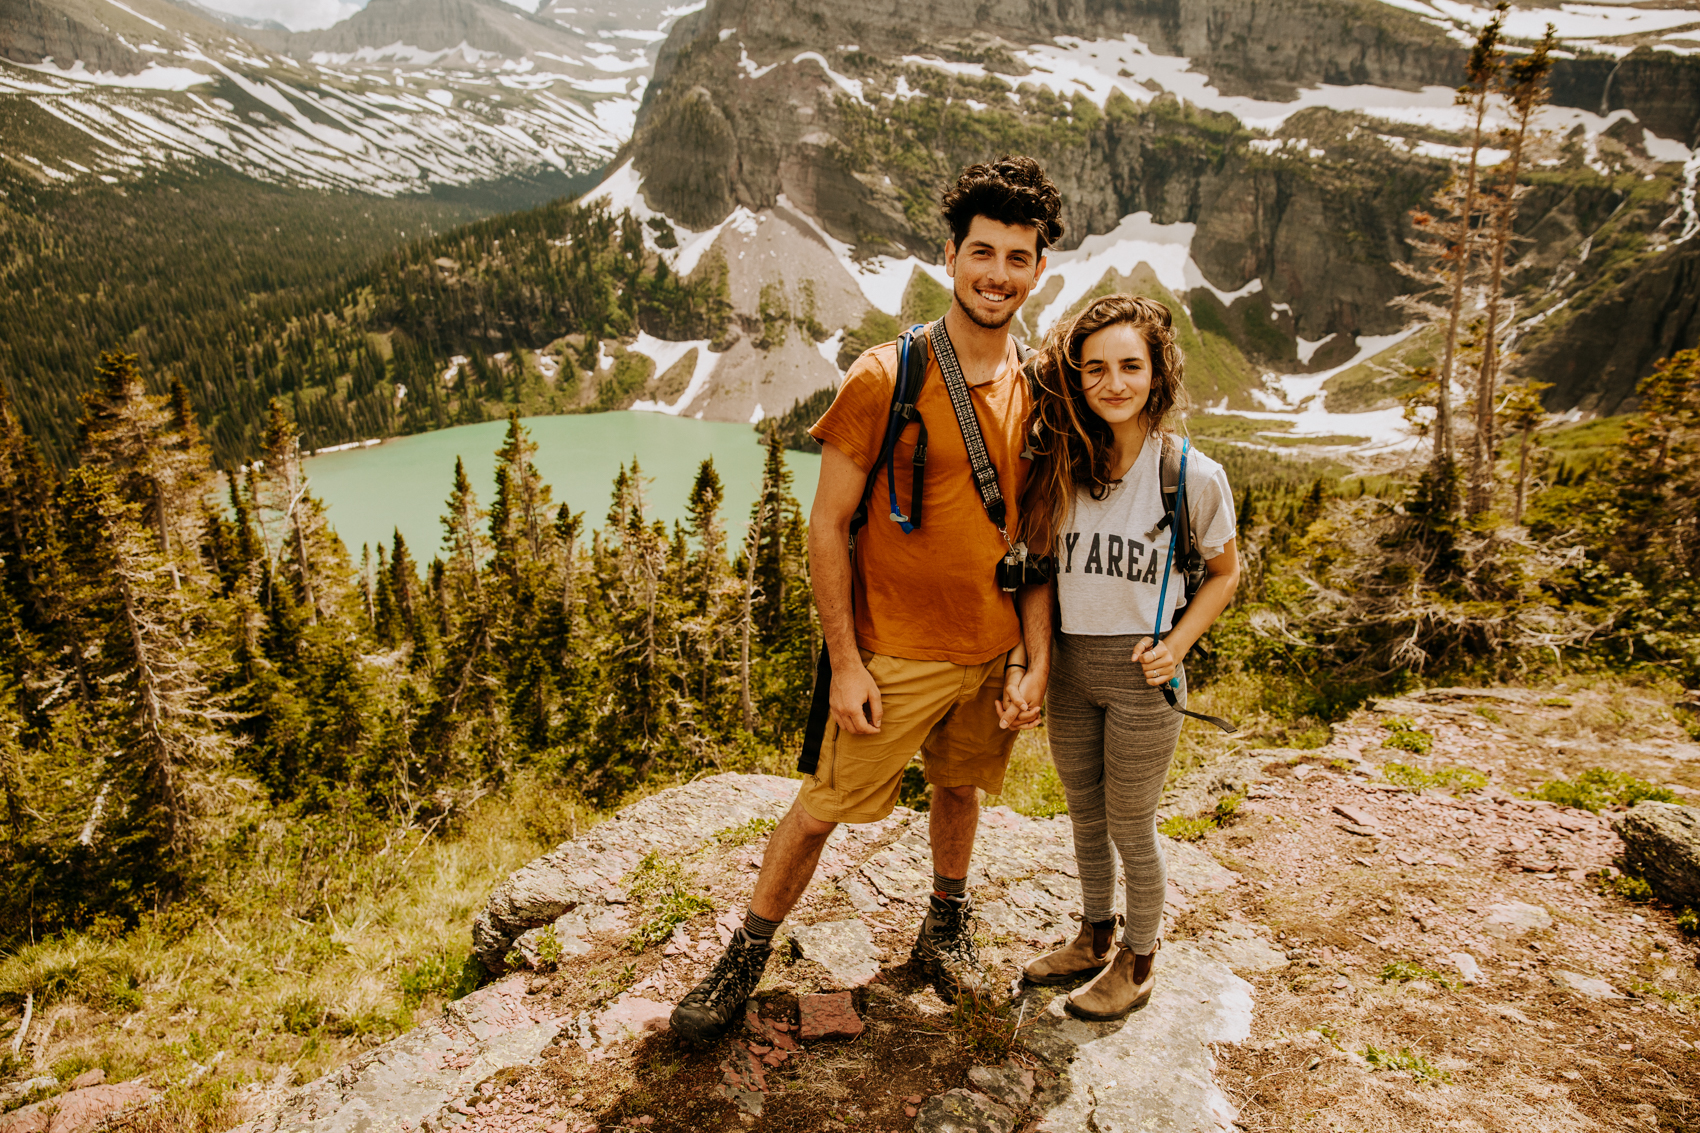 montana-glacier-national-park-mountain-hiking-engagement-session-Narrowleaf_Love_and_Adventure_Photography-9774.jpg